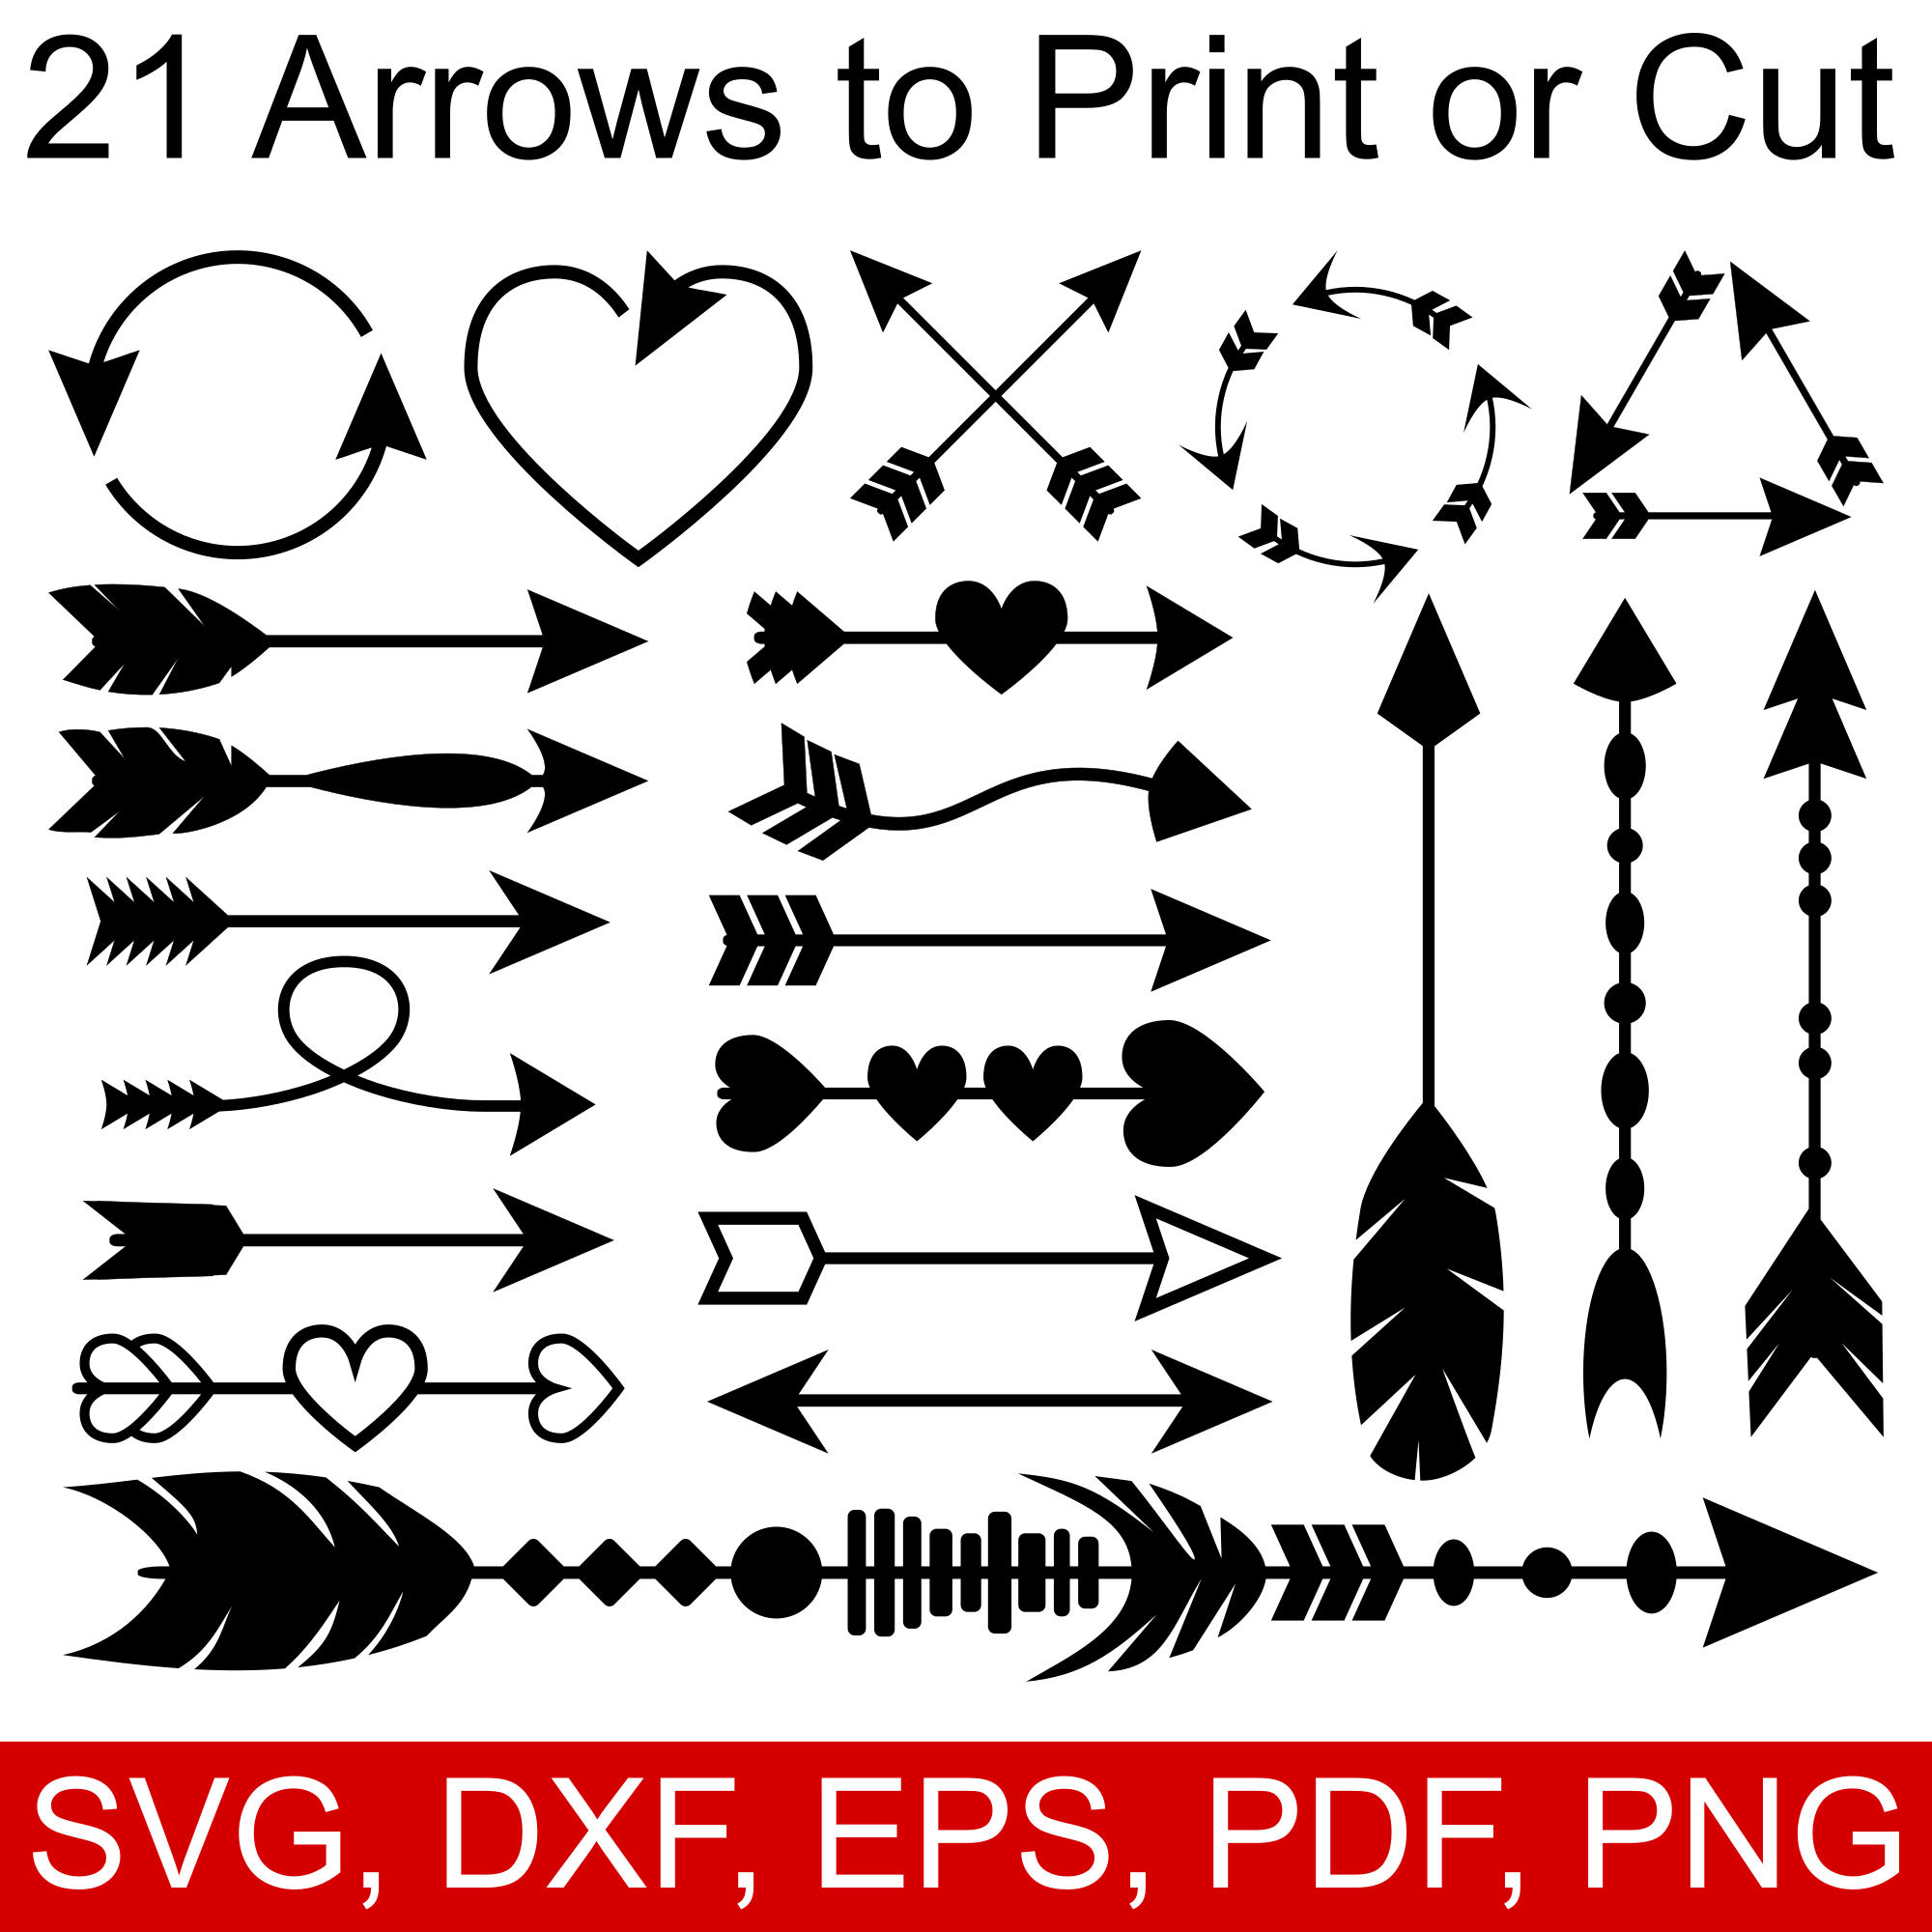 image regarding Arrow Printable known as Arrows SVG Deal with 21 Arrow SVG data files and printable